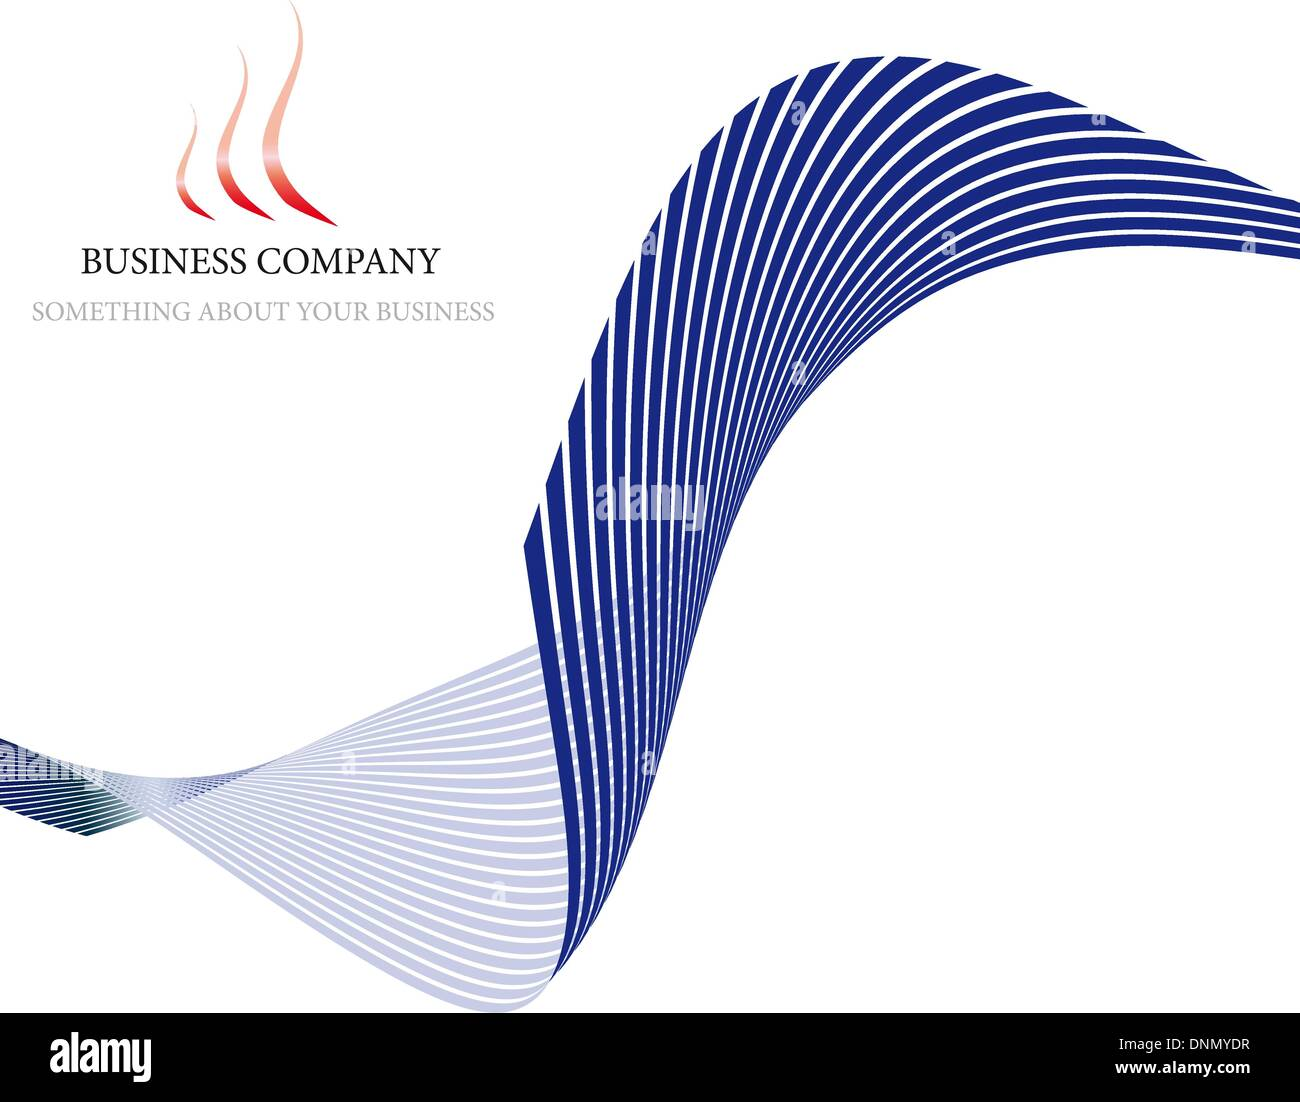 Abstract vector corporate background for design use - Stock Image